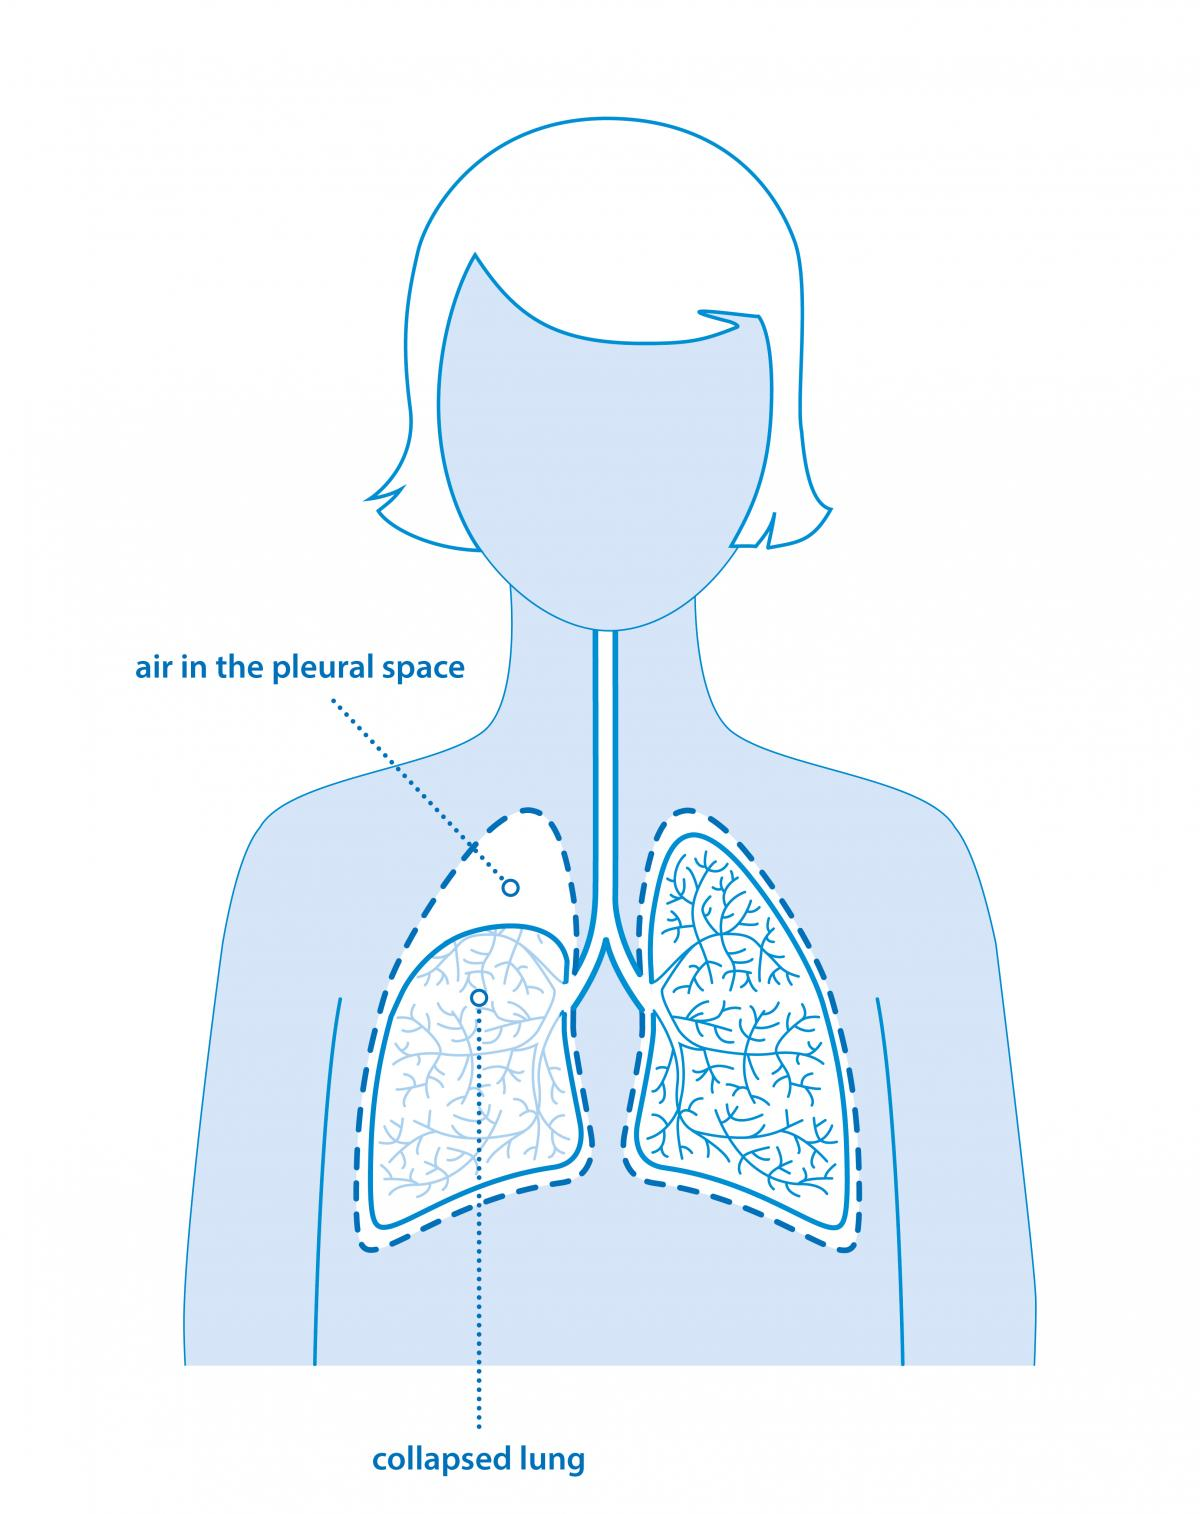 Pneumothorax diagram of lungs